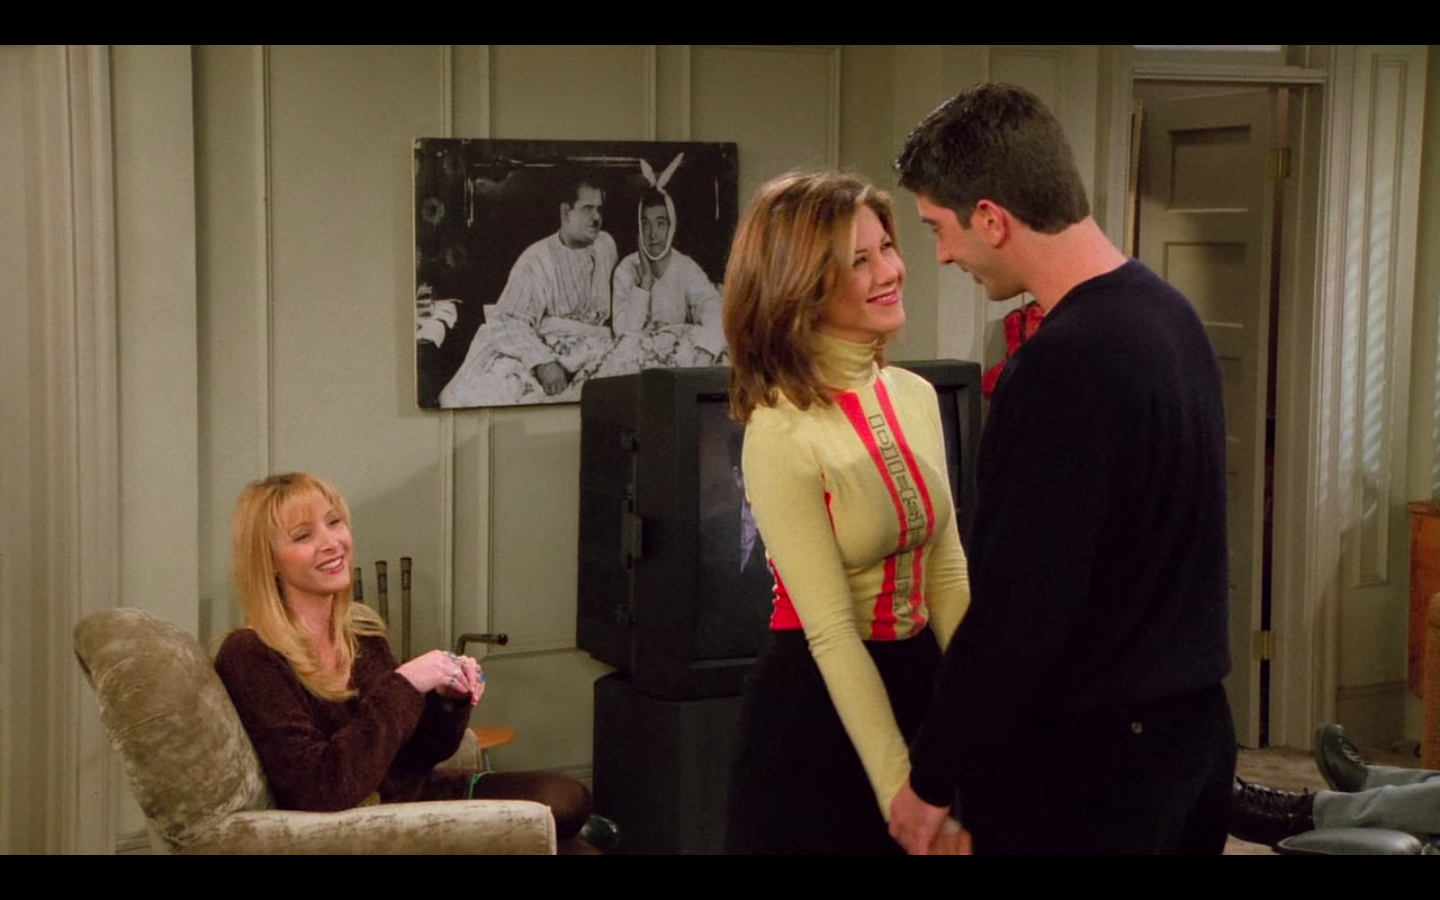 Jennifer Aniston as Rachel Green in Friends wearing black shorts over tights and yellow and red rollneck top.